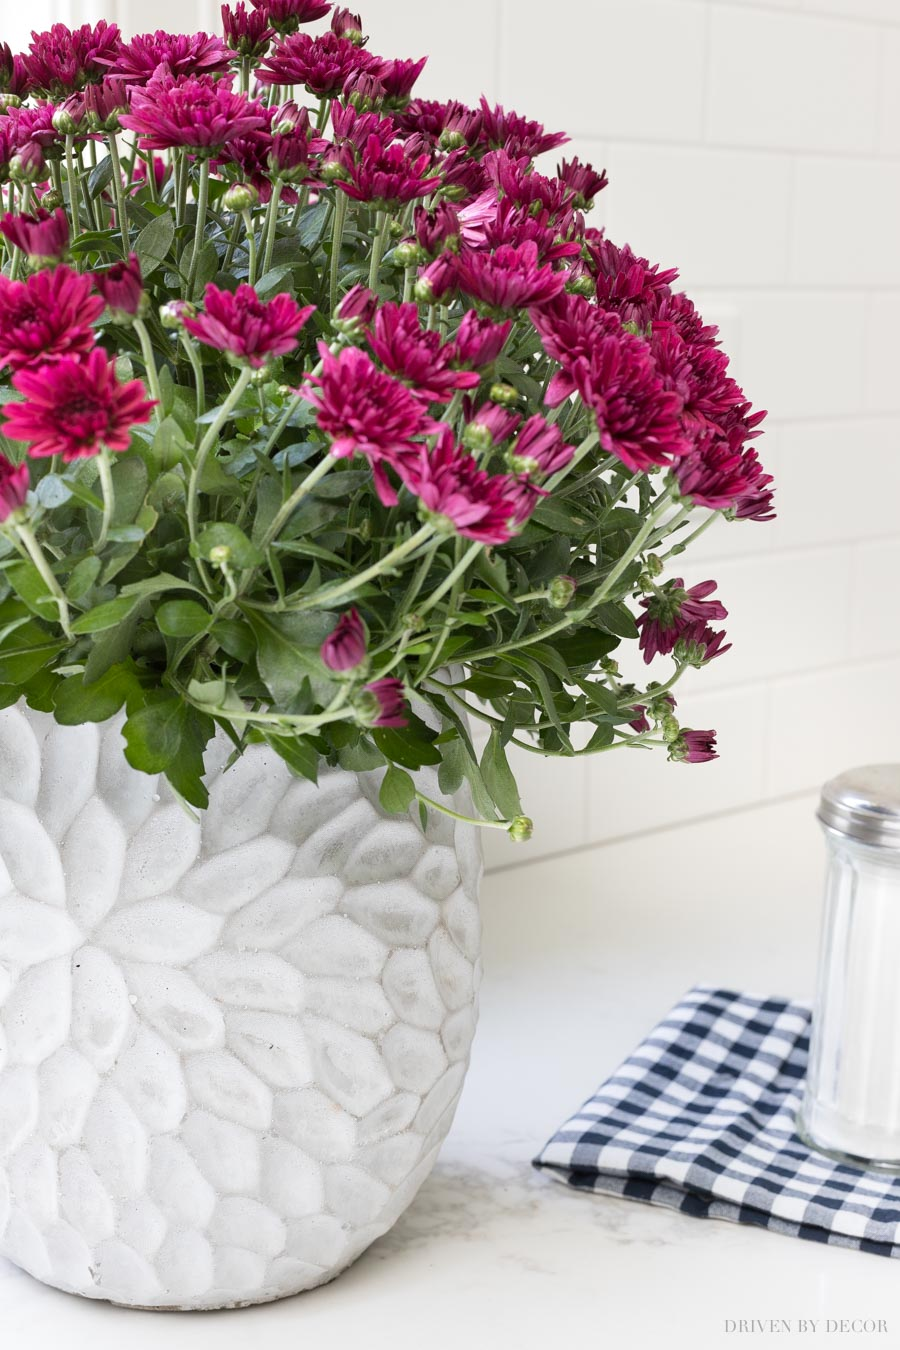 Such a pretty indoor outdoor planter - it's linked in this post!